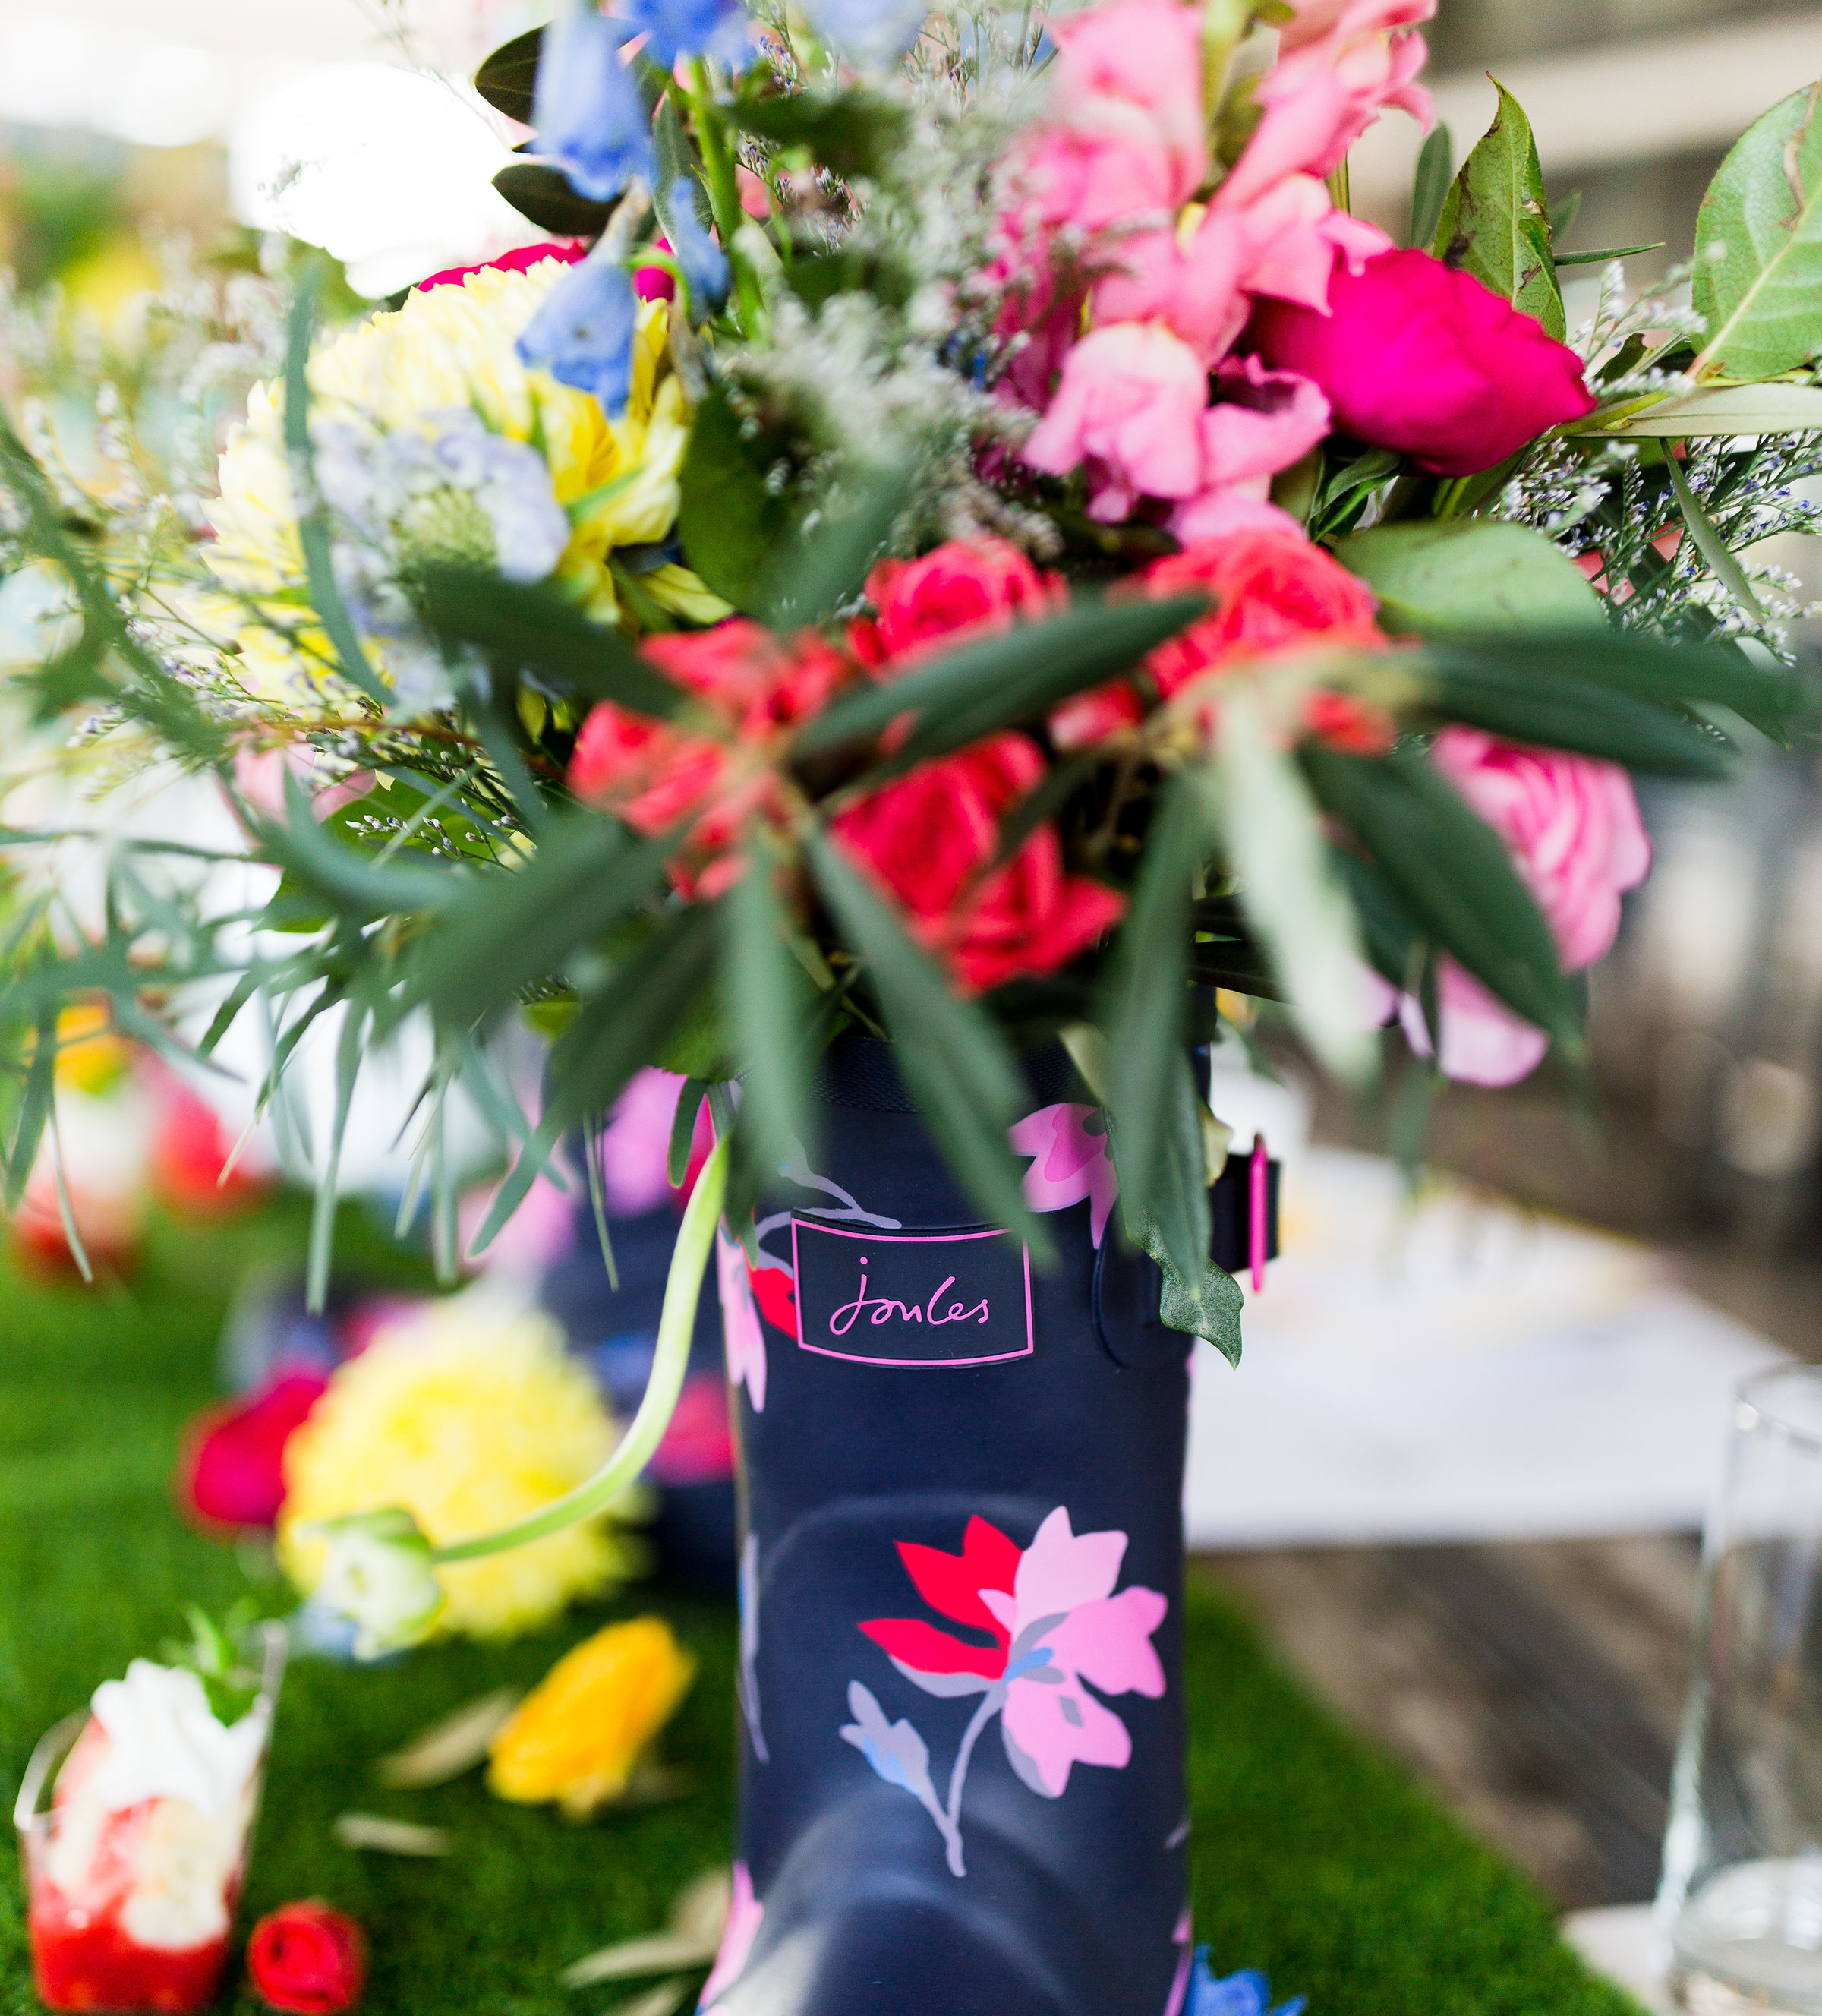 Joules rain boot with flowers